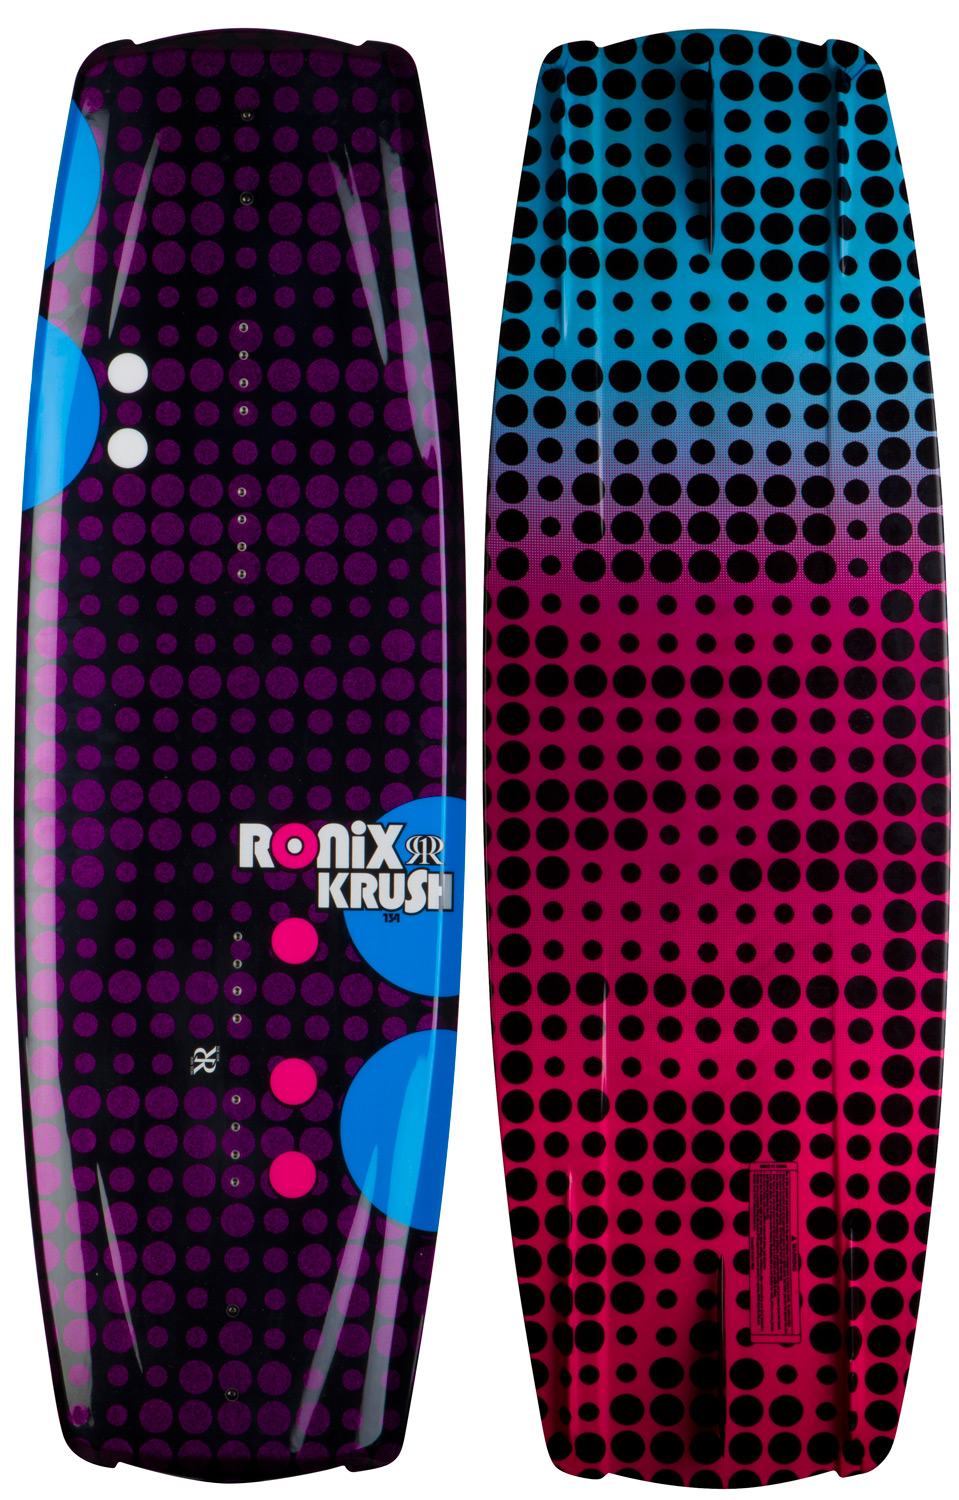 "Wake The latest generation of boards are built with the understanding that your body is working against the boat on a toeside edge. This revolutionary shape allows a rider to edge more effectively into both sides of the wake redefining the demands needed for toe/heelside versatility. Gone are the days of leaving the wake's transfer in a unnatural position. The Krush recognizes that your body is crossed up riding toeside, and takes this into consideration with the design of the rocker, and fi n shape/placement and sharper profile. This allows the rider to point the board with maximum grip to the wake without requiring excessive attack angle. Who said asymmetrical was only for entry level riders? Many contests have been won on the WWA Nationals and Worlds - a series with no limits takes features from several boards in our line. The 2012 Krush - a platform to develop your riding style without any restrictions with our unconventional Secret Flex layup offering more contact with water and softer more controlled landings.Key Features of the Ronix Krush Wakeboard: Toeside rail is thinned out to sit deeper in the water creating additional grip from this sharp profile Toeside fins are deeper, longer and closer to the rail for a strong/stable edge hold Heelside rail starts off softer/fuller for a mellower transition, then blends to a more vertical sidewall with less resistance on the water Heelside fi ns are shorter and further from the rail for a quicker release on spinning tricks 4 molded asymmetric fi ns shape track true in a straight line, but break free easier with more float in a side slide position Wider profile creates a bigger sweet spot riding in any water condition 2 fiberglass 1.7"" fi ns Designed by Mike Ferraro and our development team - $299.95"